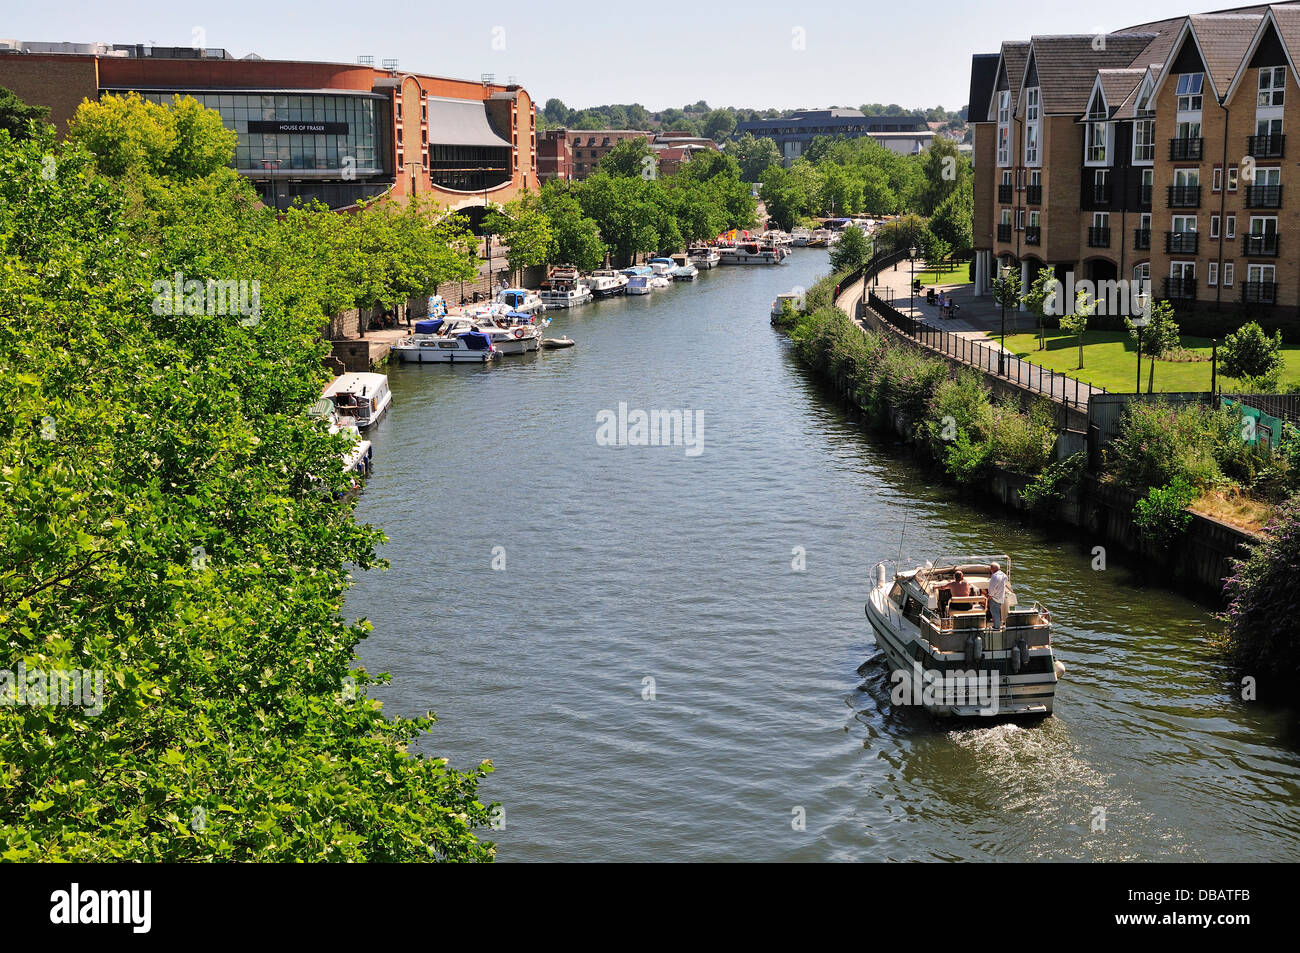 Maidstone, Kent, England, UK. River Medway in the town centre. - Stock Image